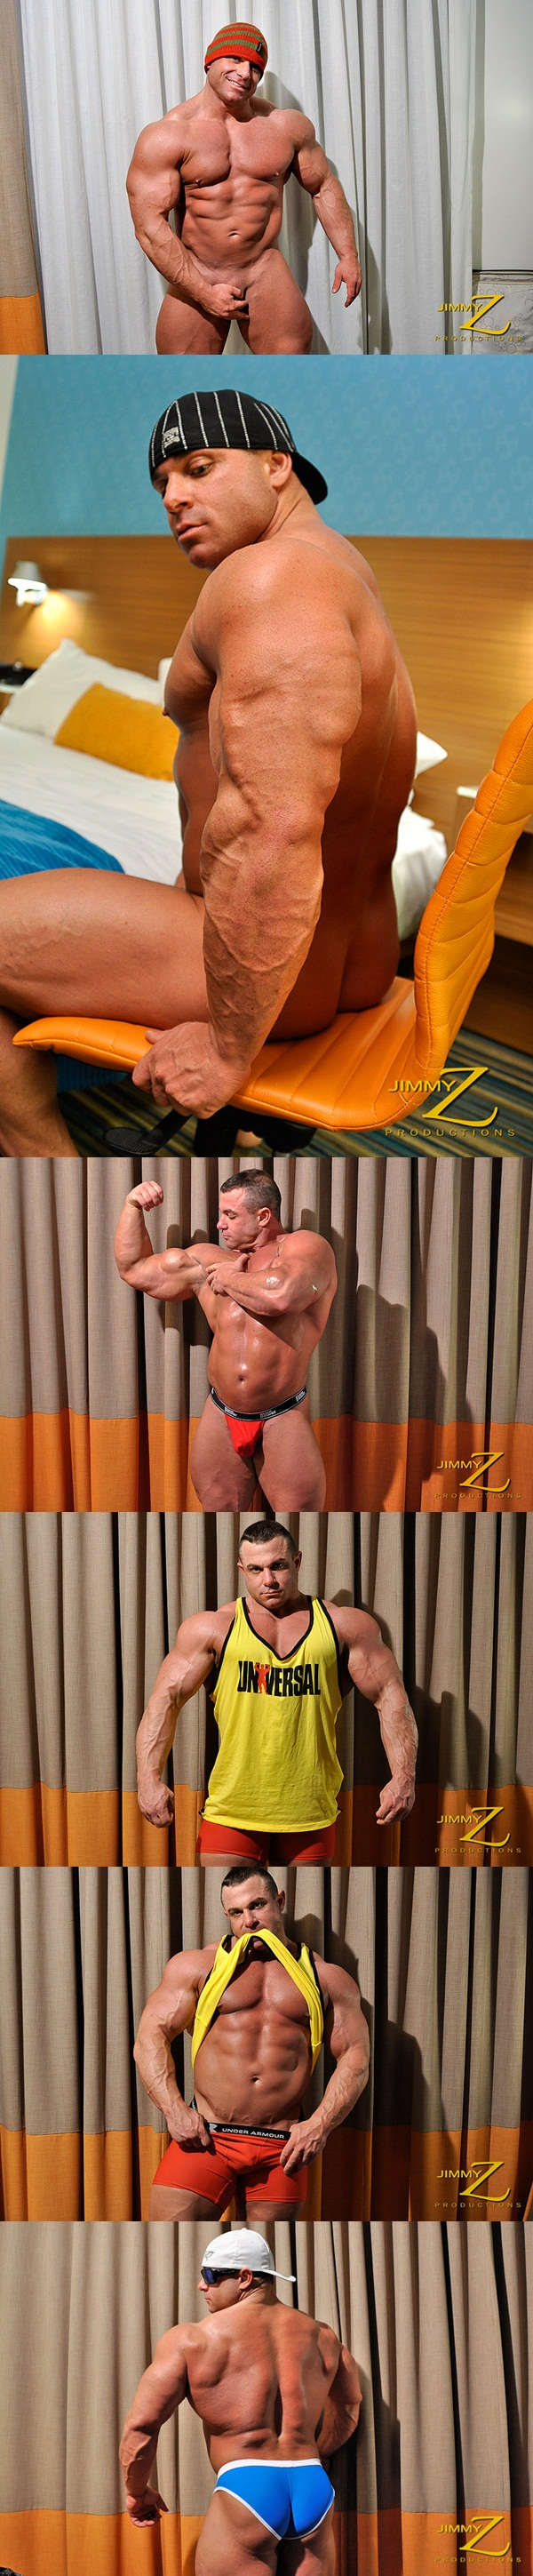 Handsome masculine muscular Chaz Ryan shows off his big muscles in An Invited Voyeur Part 1 at Jimmyzproductions 01